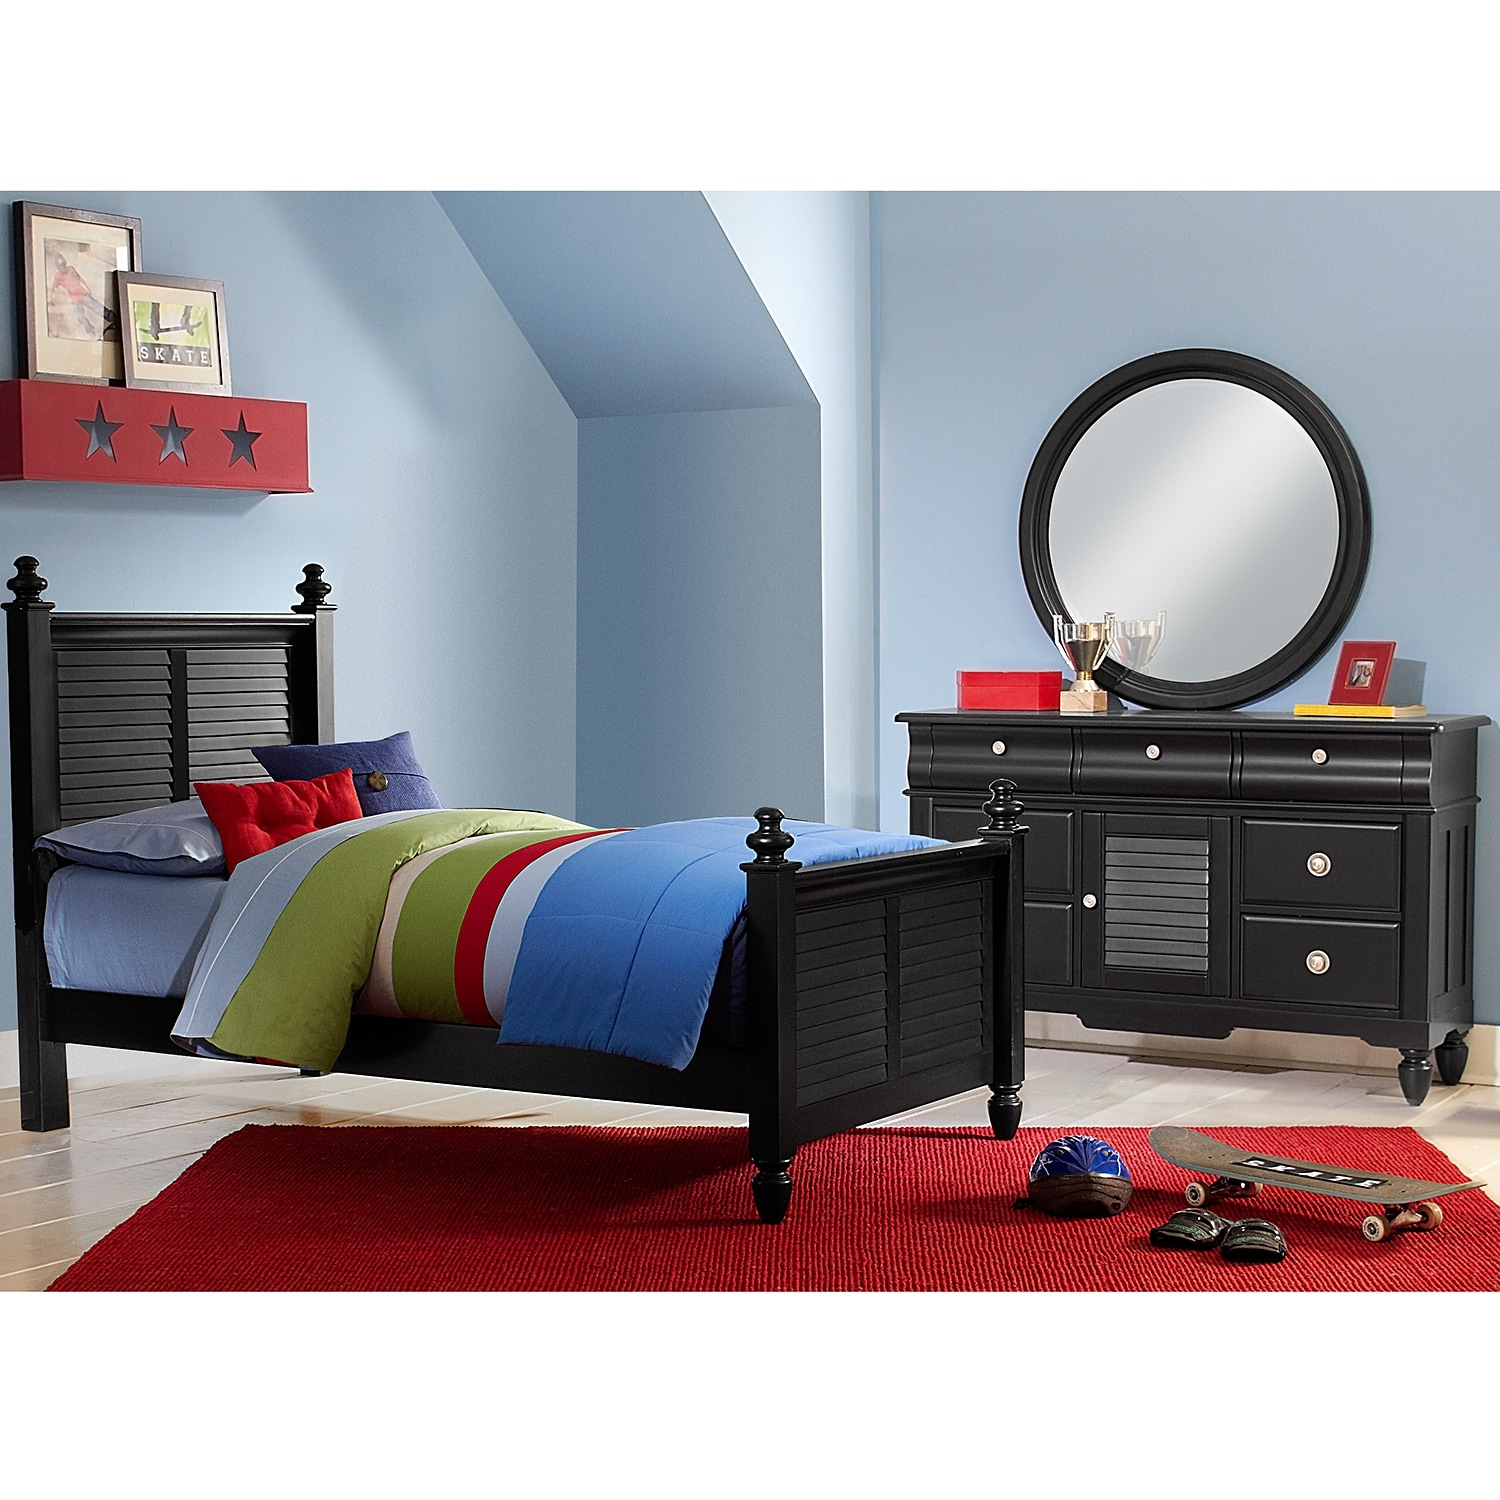 Seaside 5-Piece Twin Bedroom Set - Black